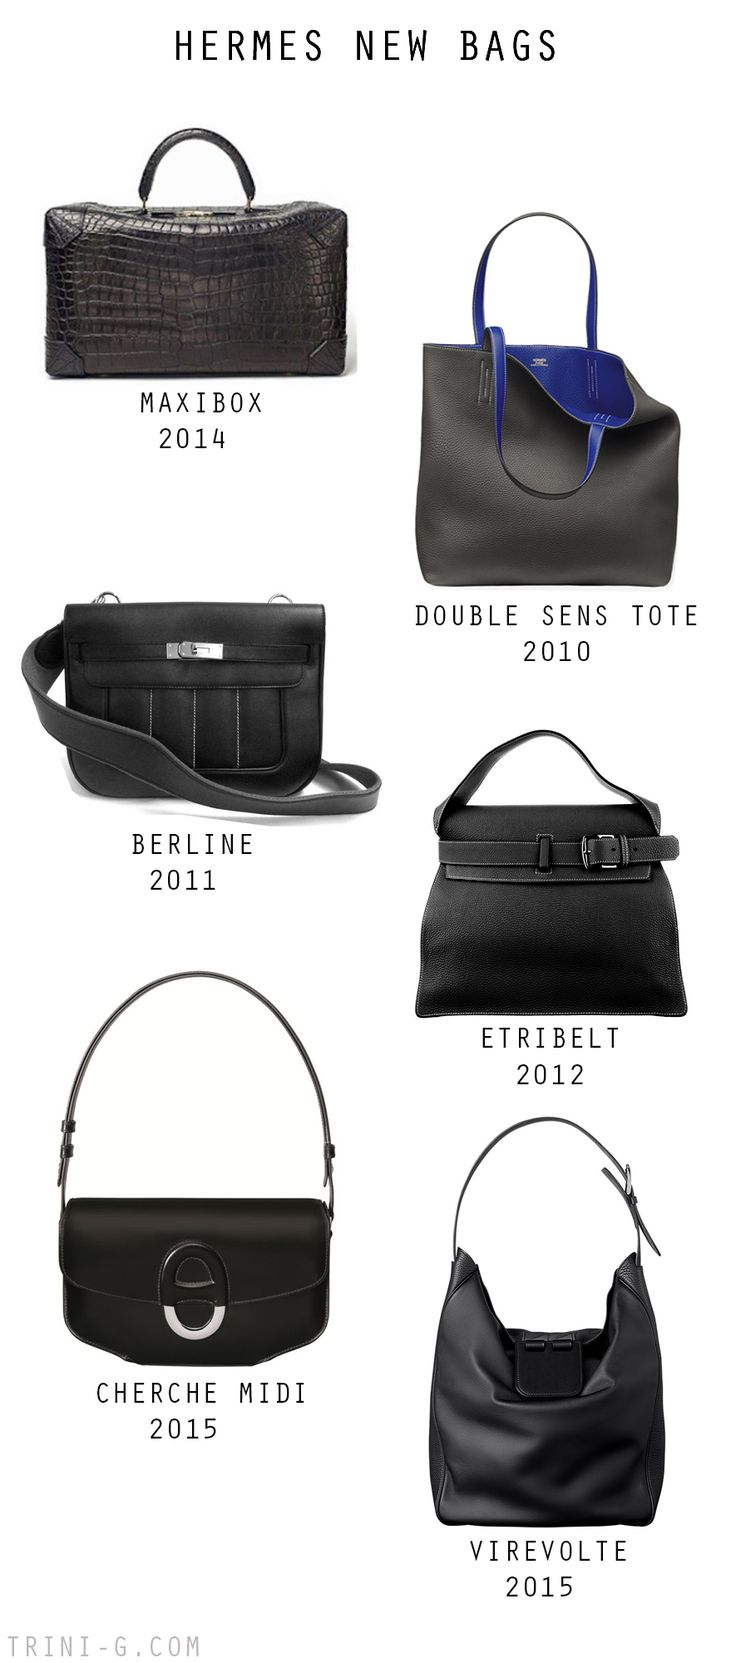 Trini blog | Hermes new bags